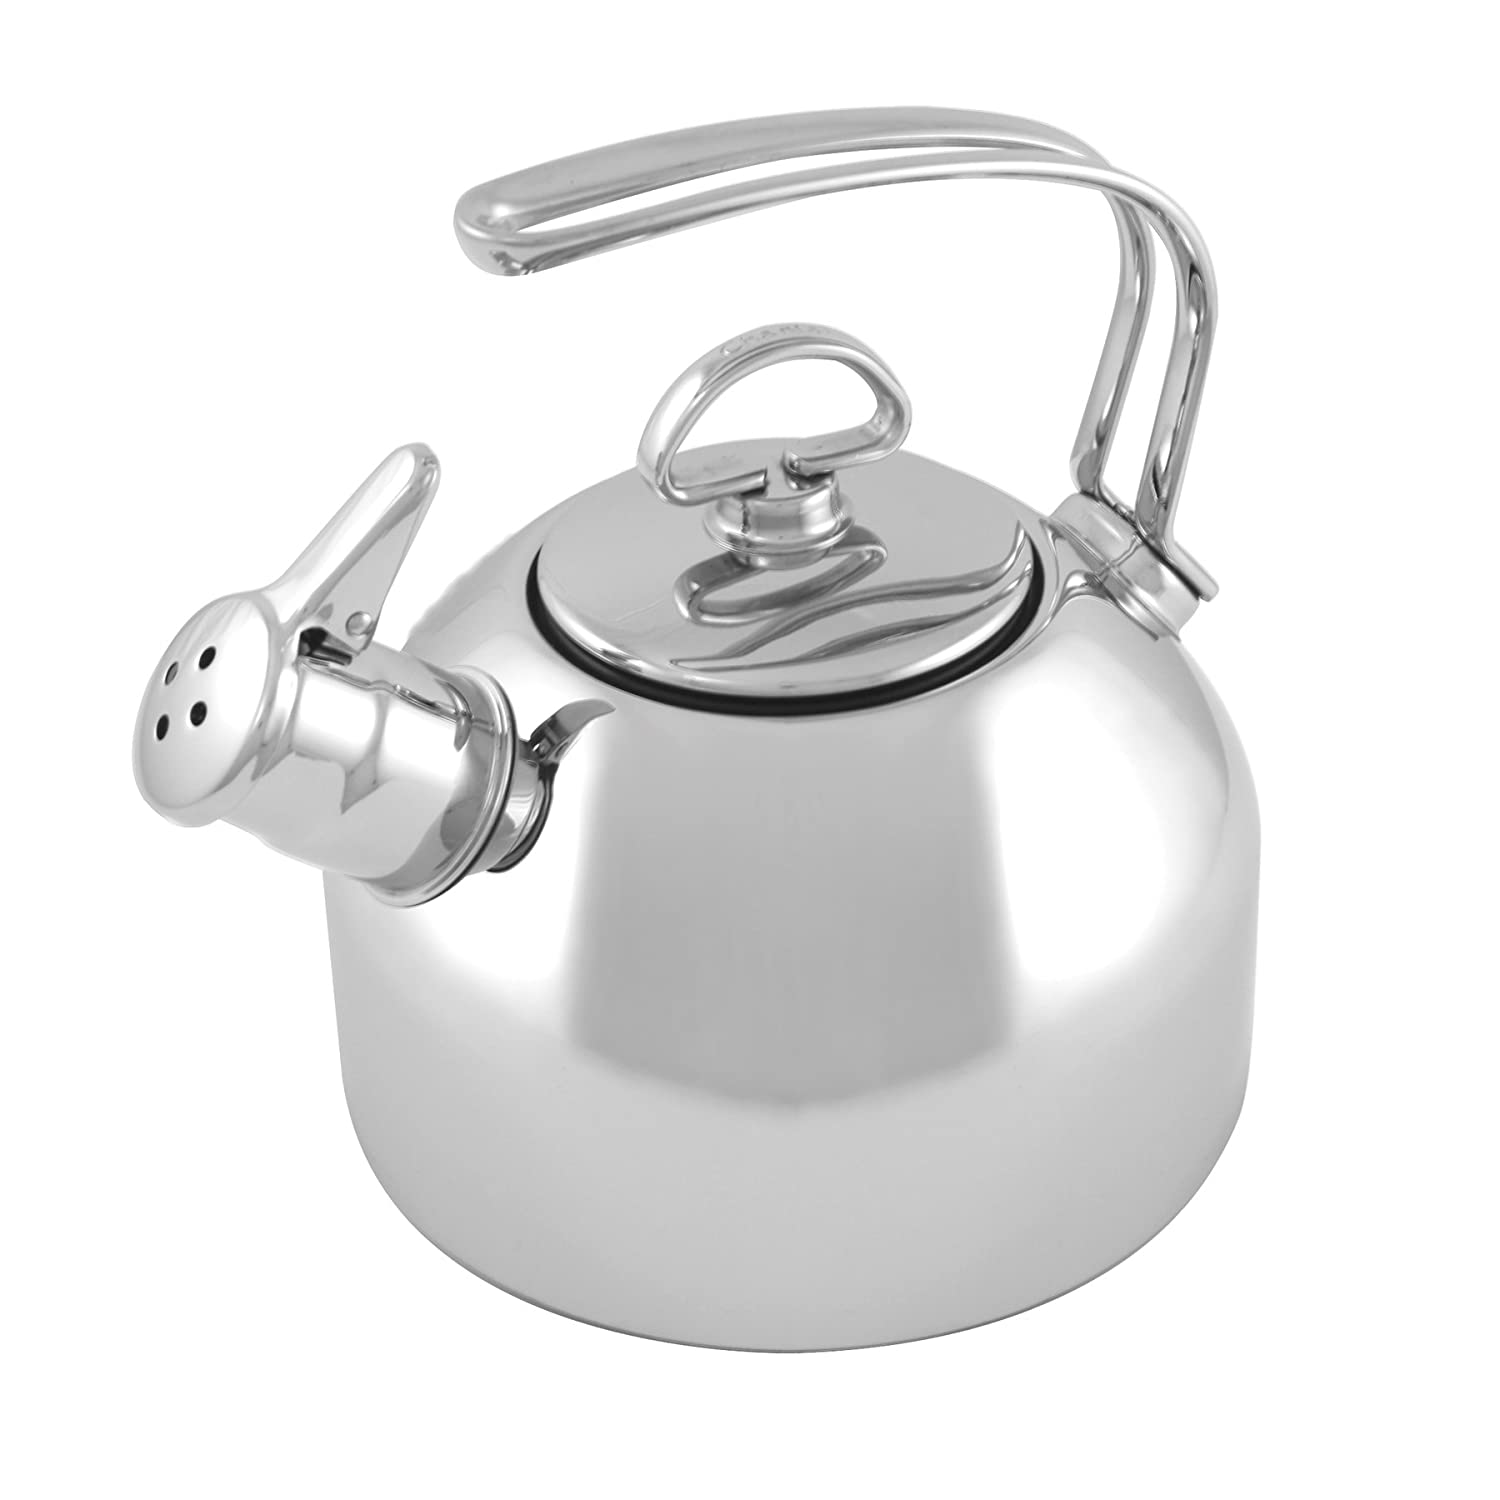 amazoncom chantal stainless steel classic teakettle  quart  - amazoncom chantal stainless steel classic teakettle  quart tea kettleceramic stovetop safe kitchen  dining